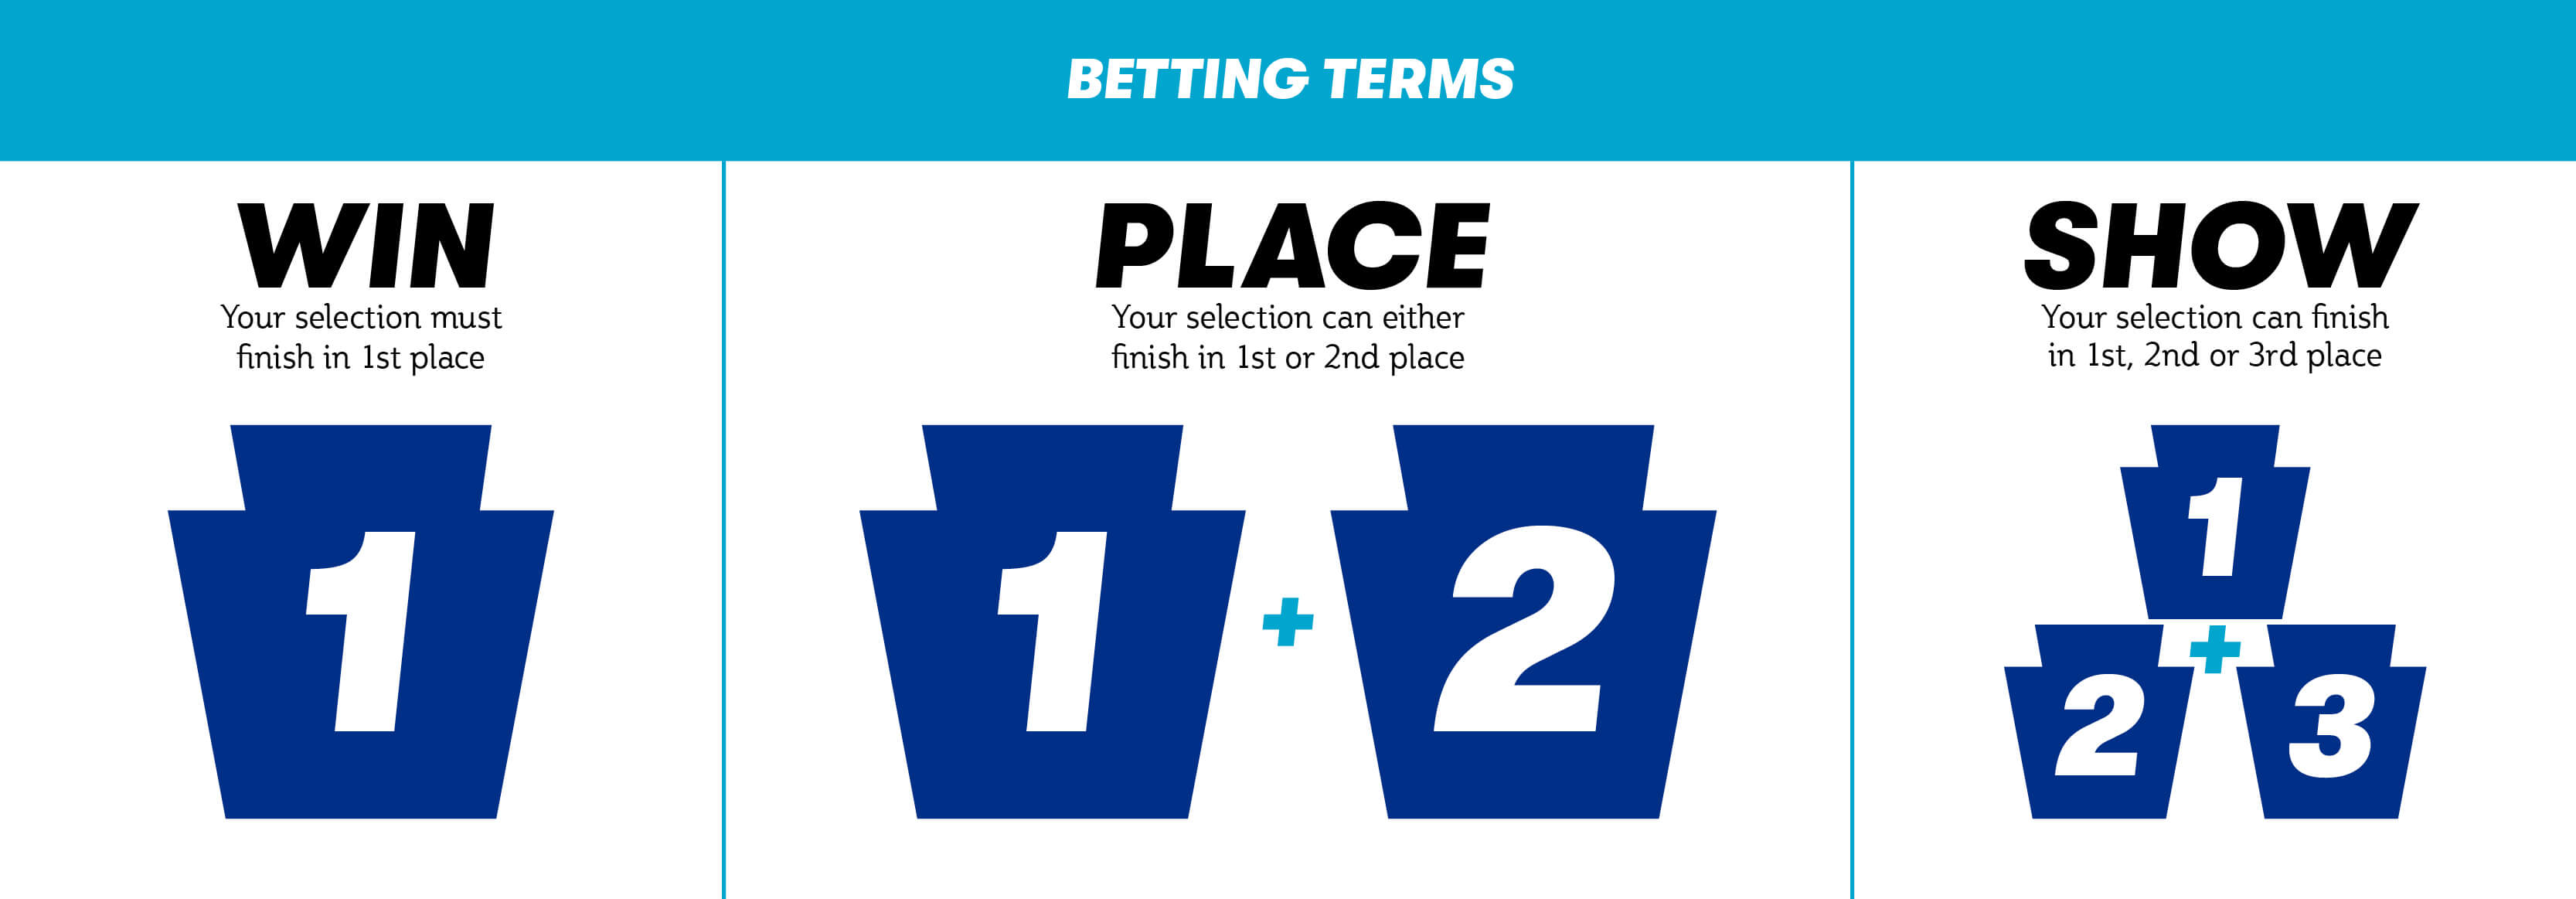 Horse Racing Place Terms